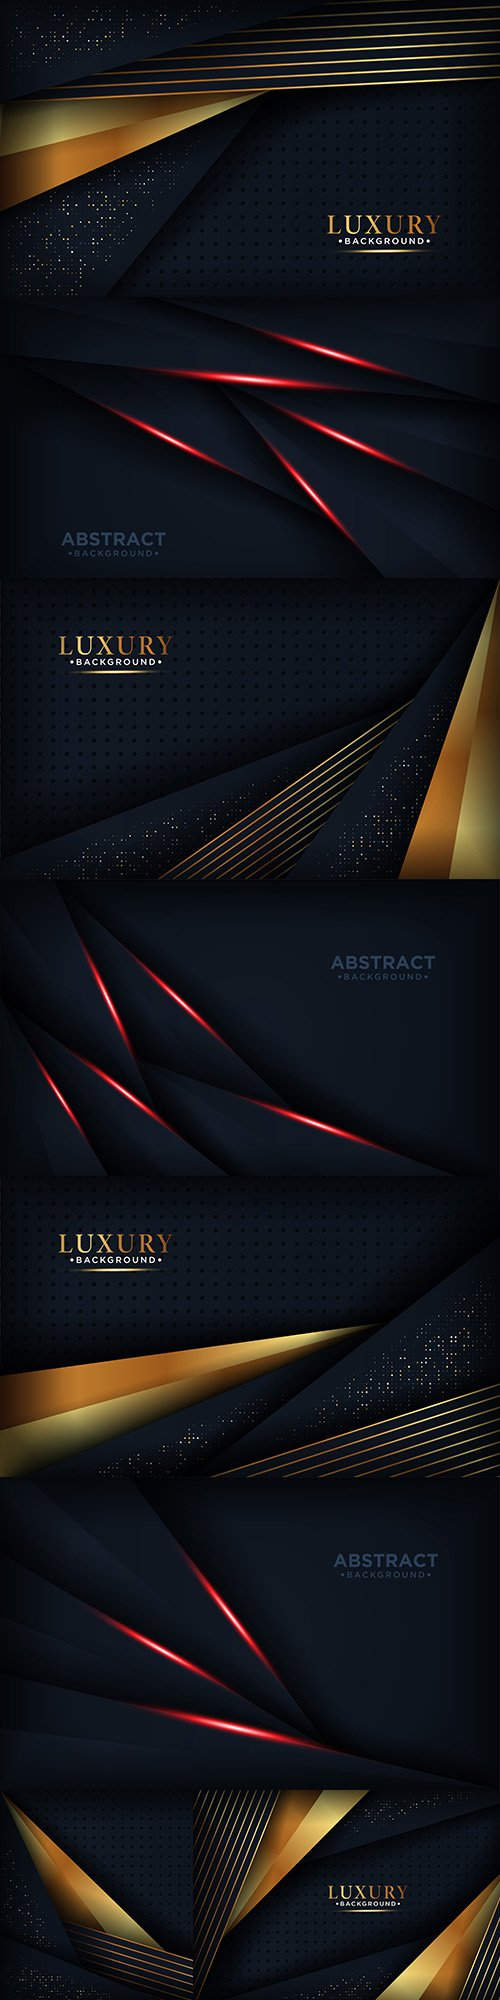 Luxury background and gold design element 20